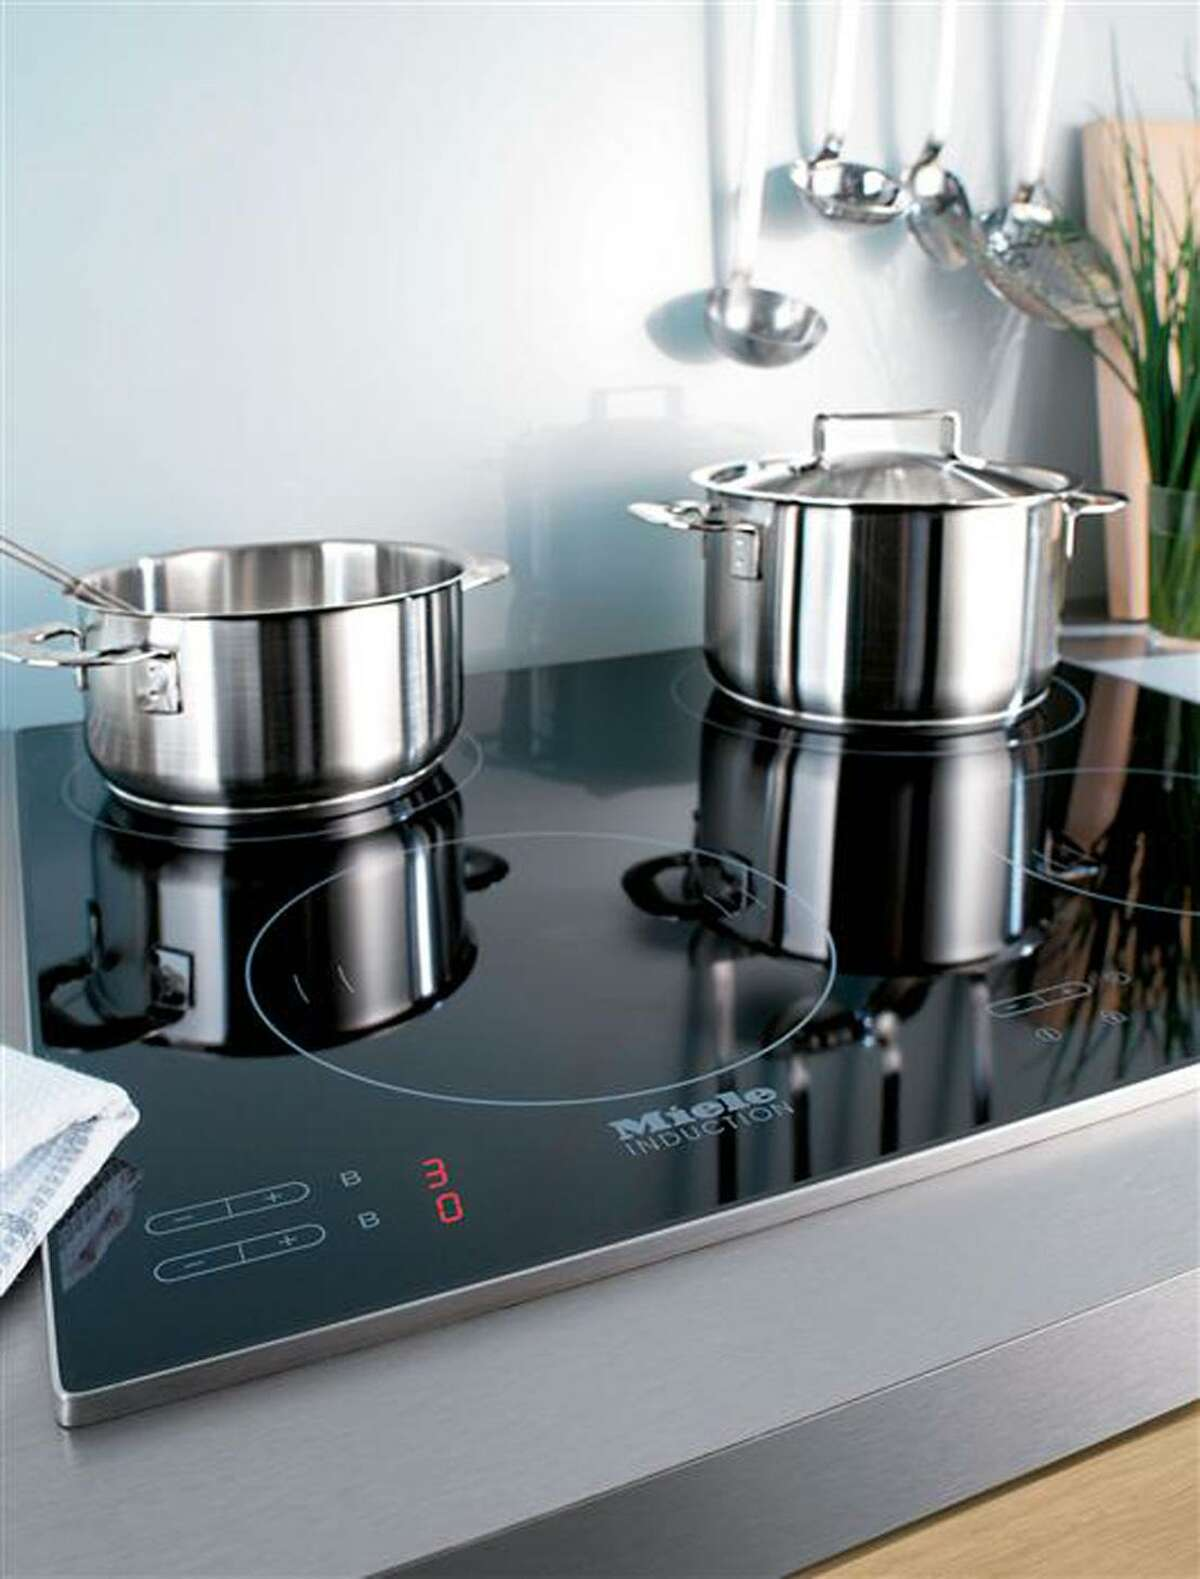 An induction stove. Making buildings all-electric to cut carbon emissions won't be as simple as it sounds.